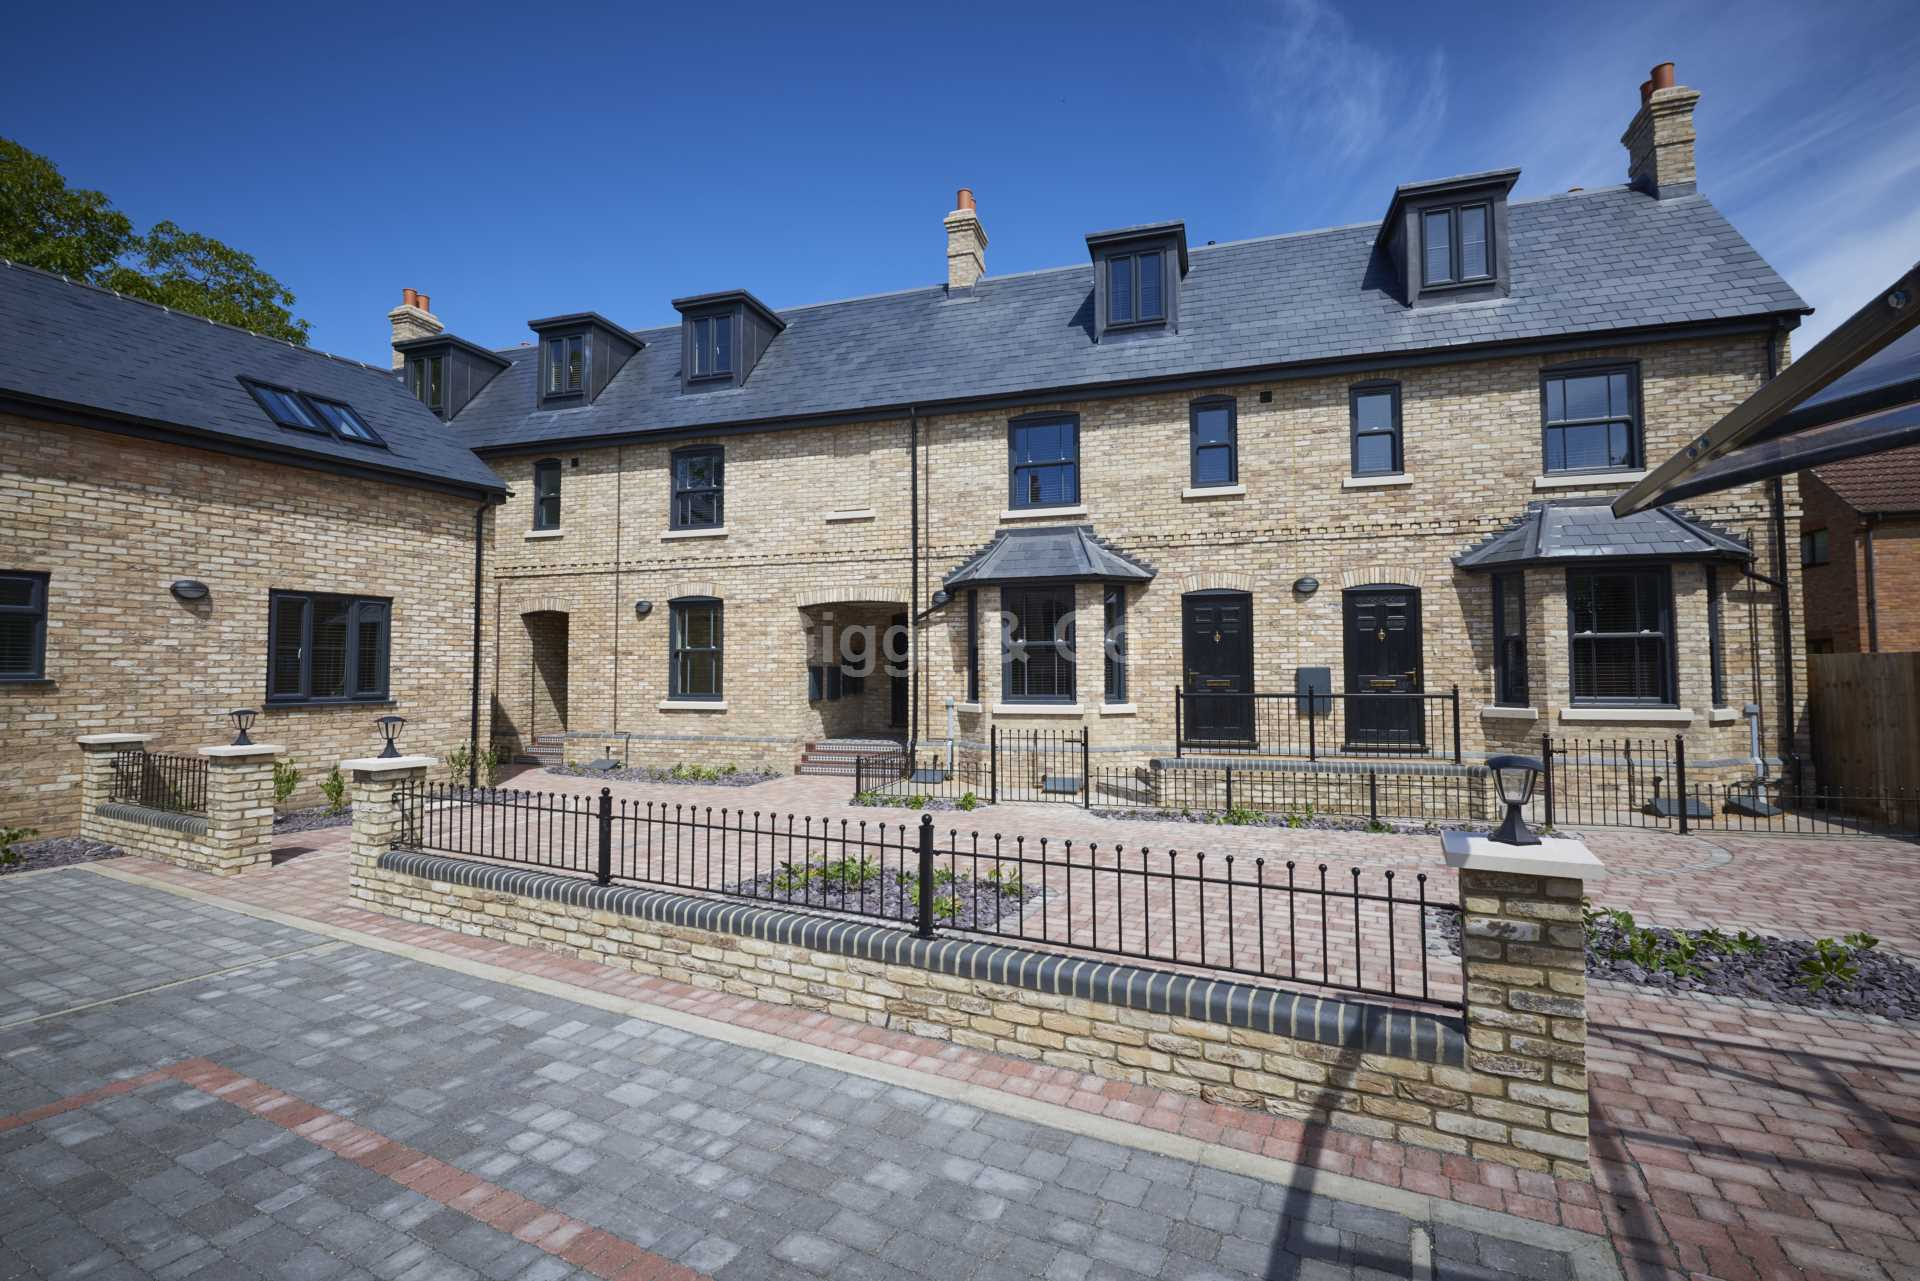 2 bed apartment to rent in East Street, St Ives, PE27